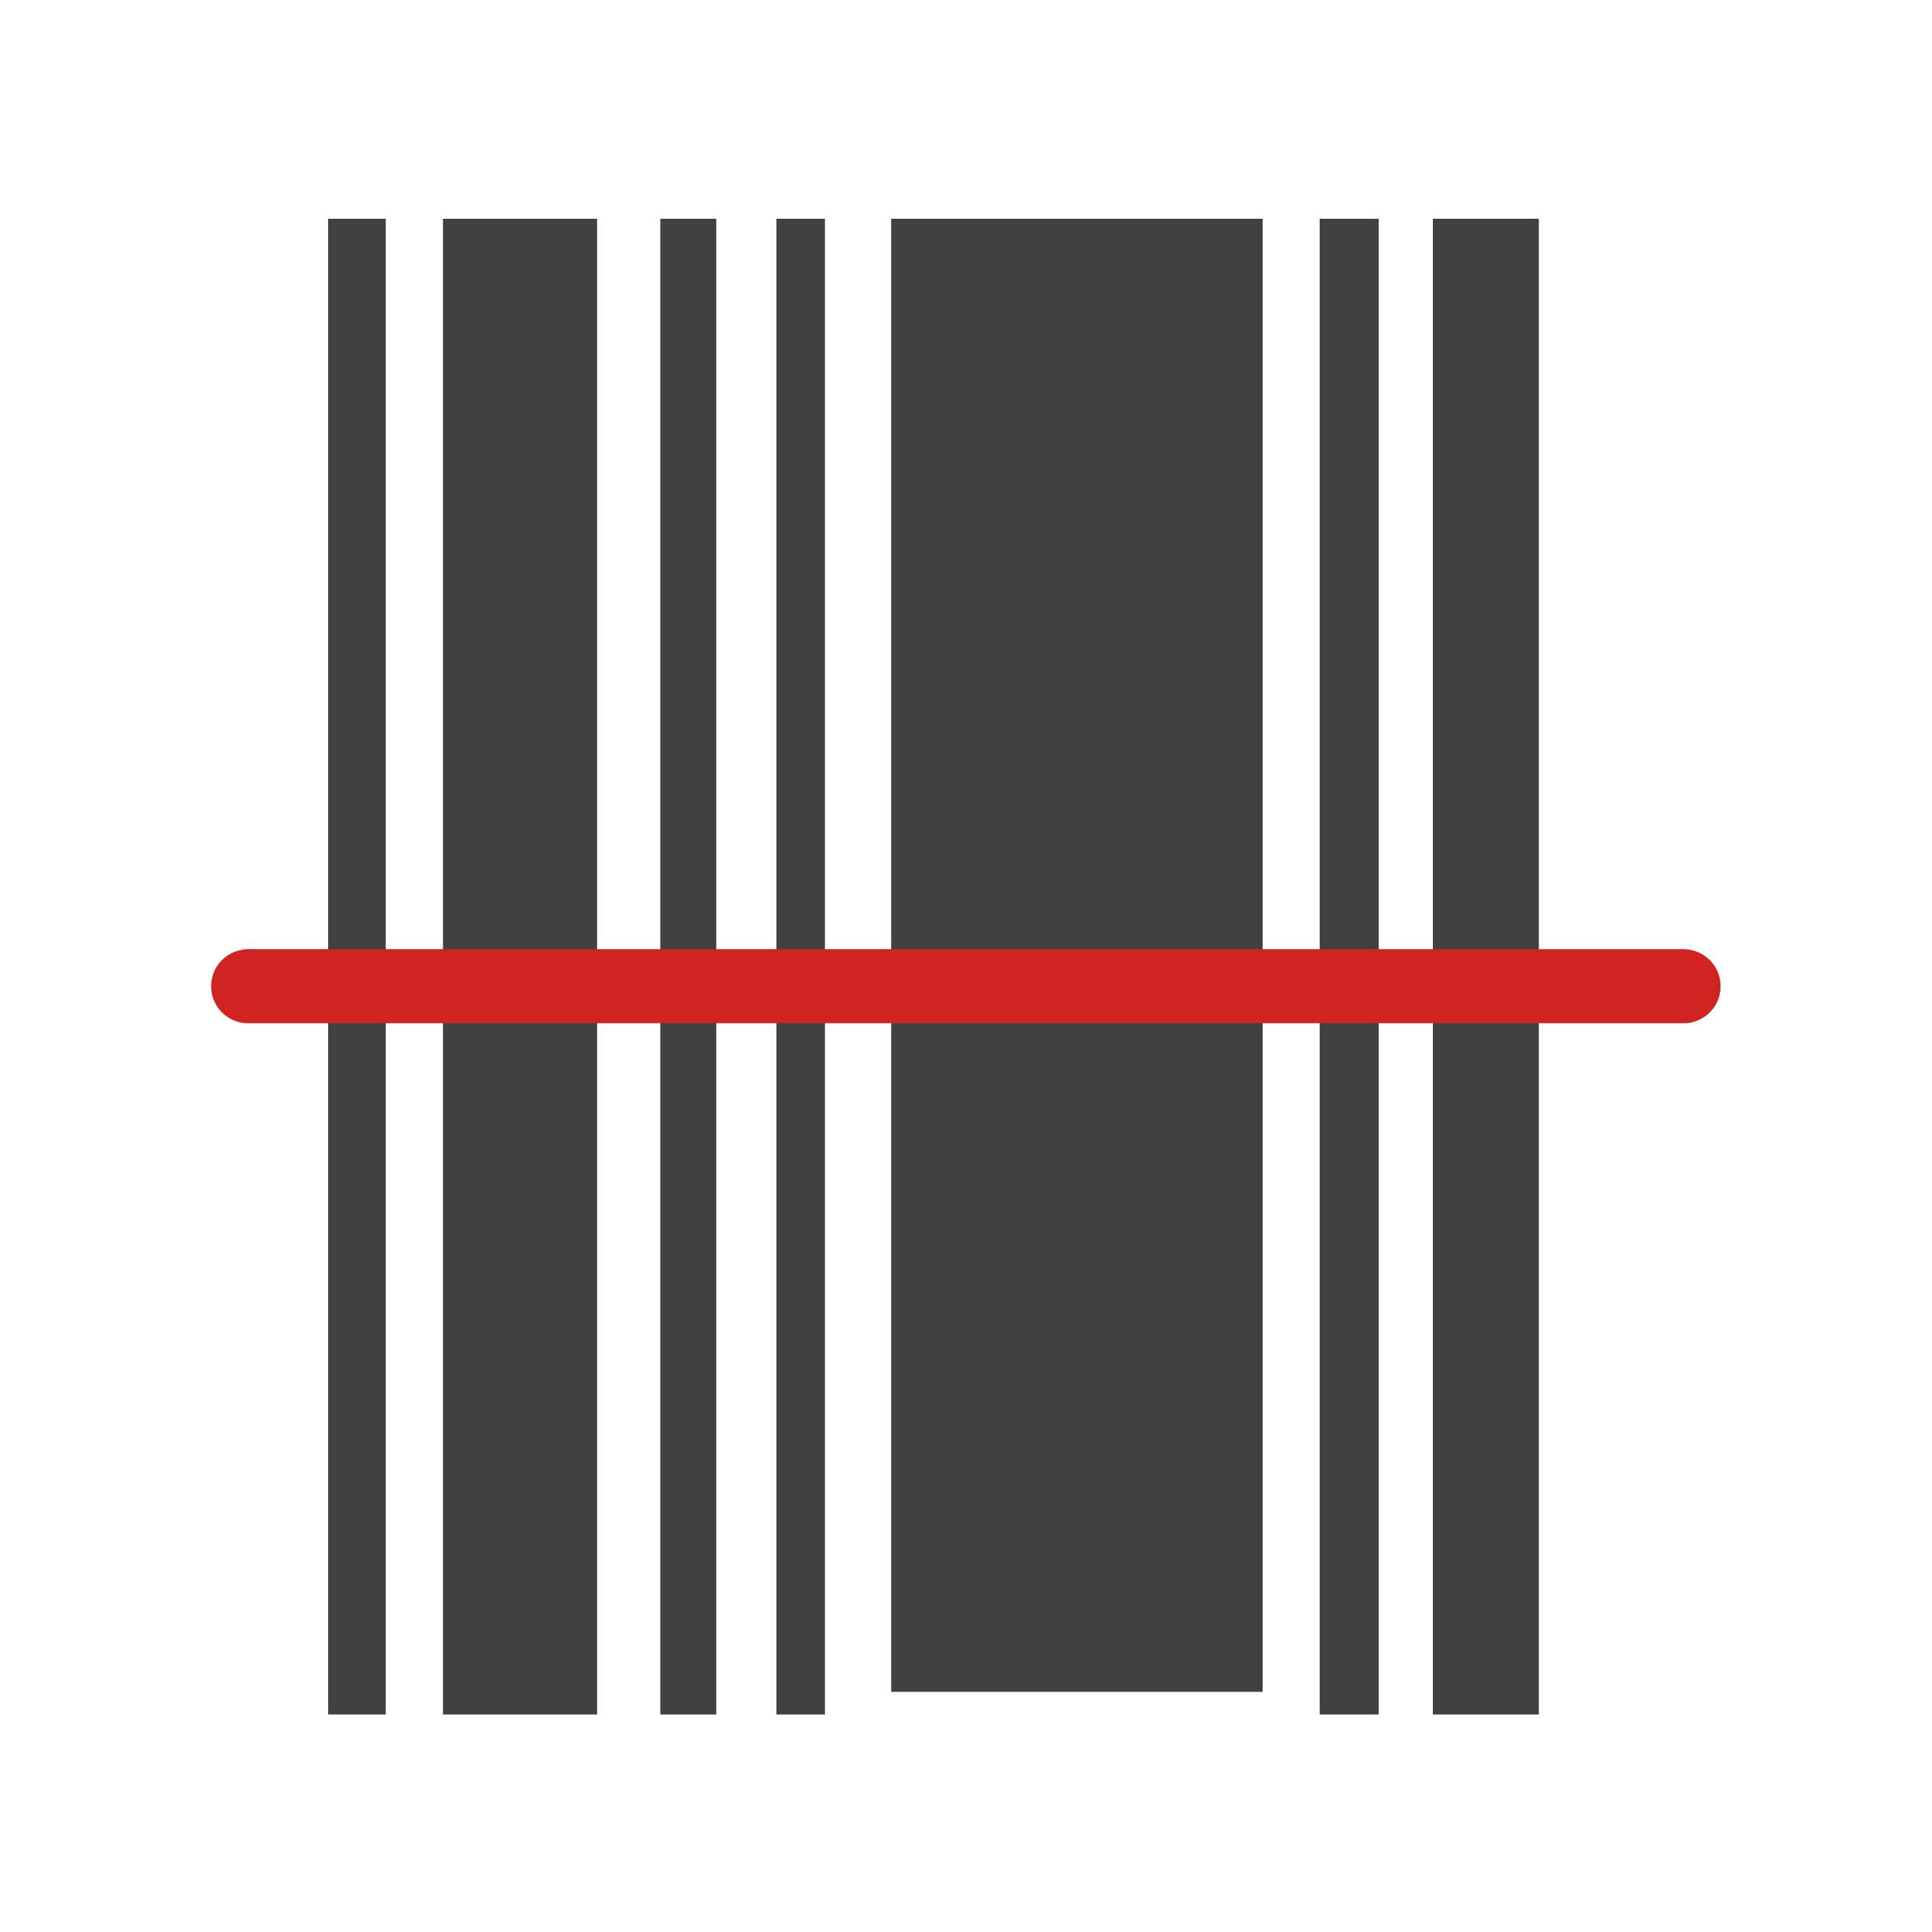 Icon for Barcode Reader Control